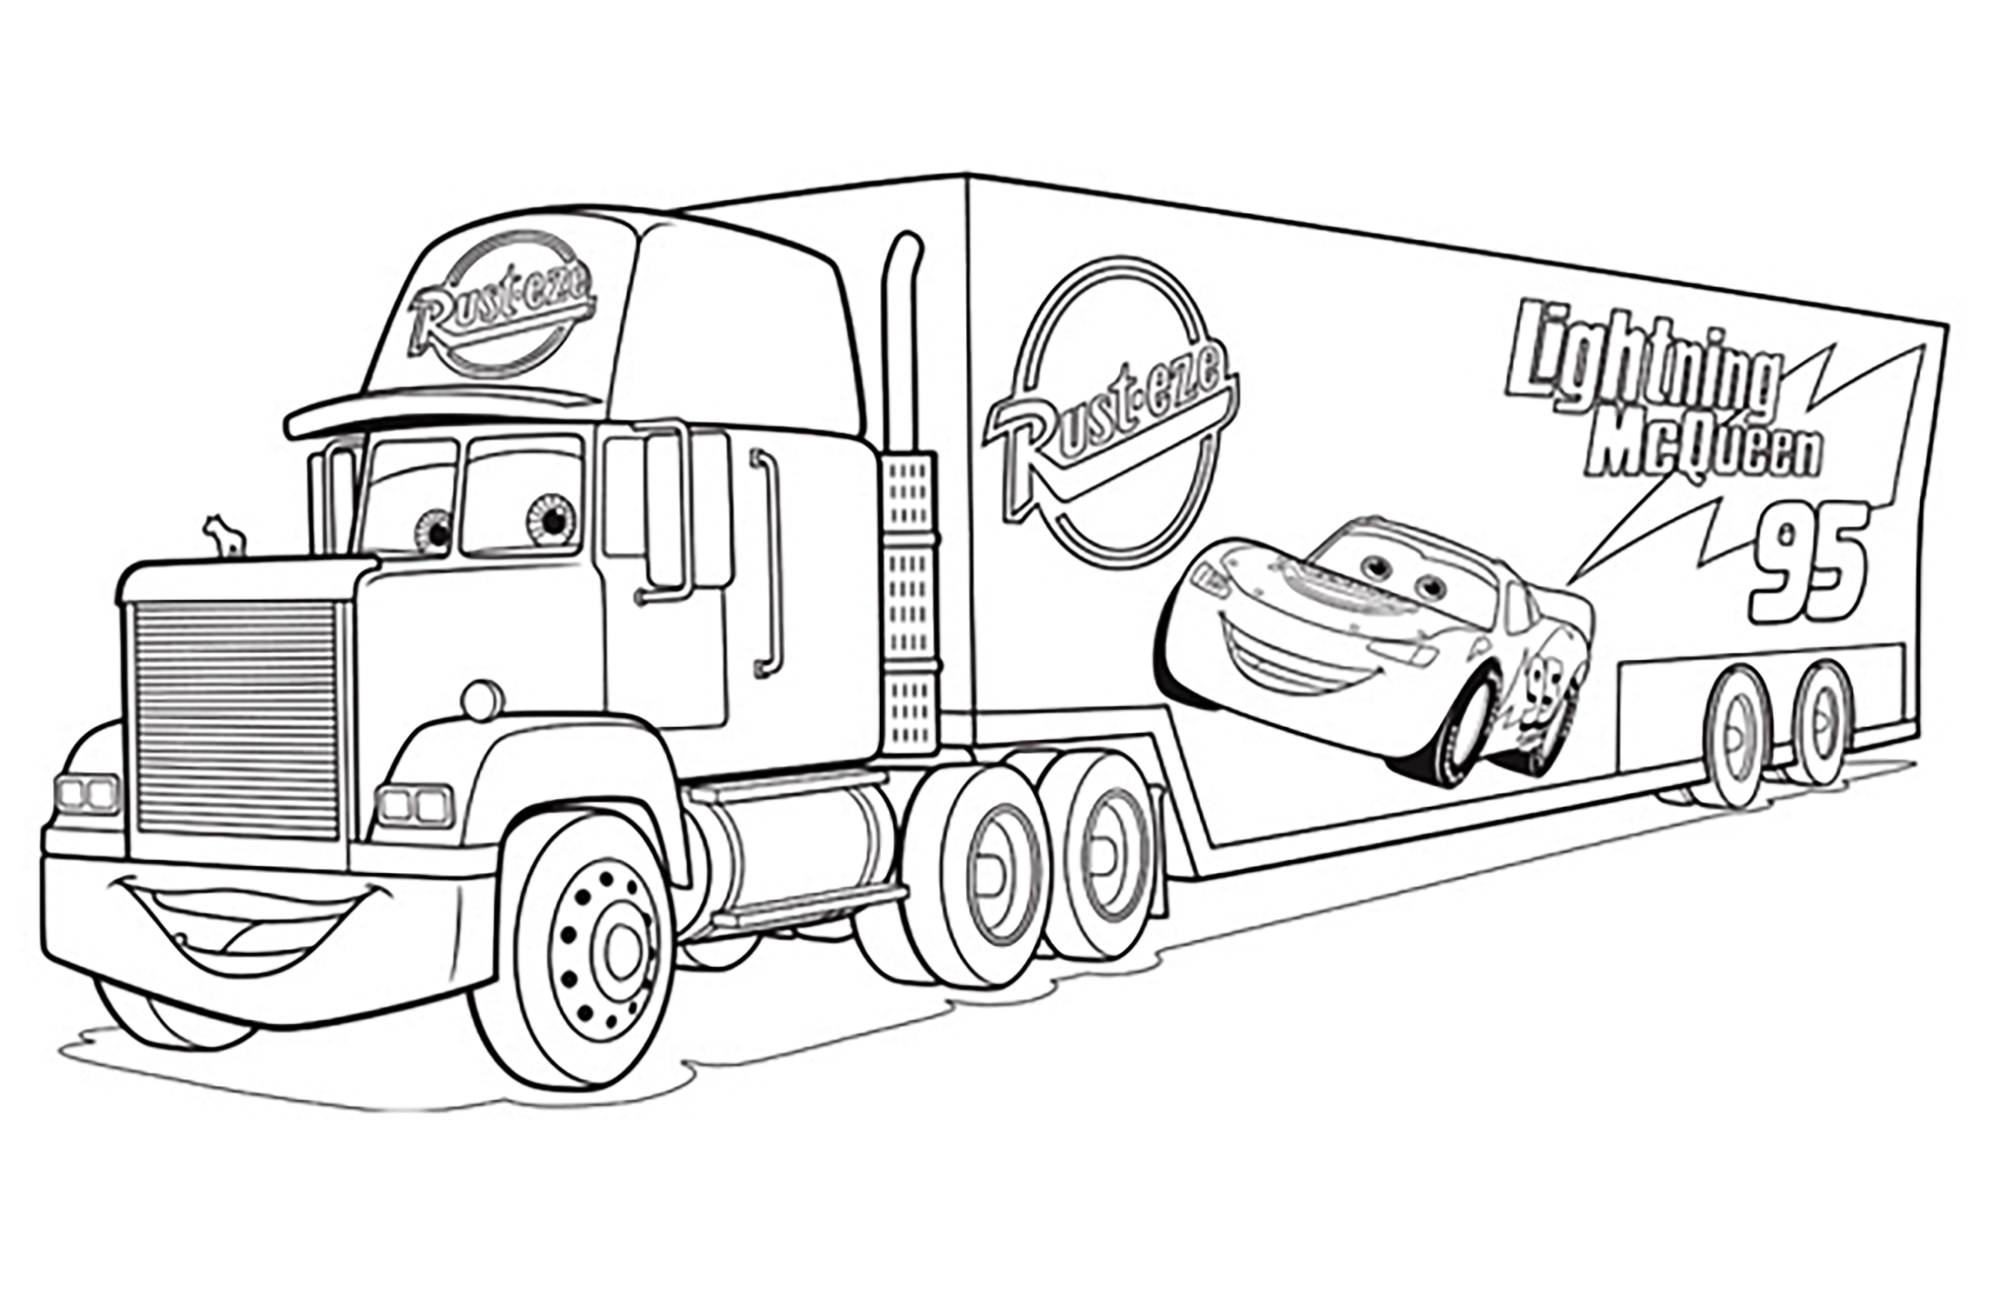 Cars 3 mack truck coloriage cars 3 coloriages pour enfants - Image a colorier cars 2 ...